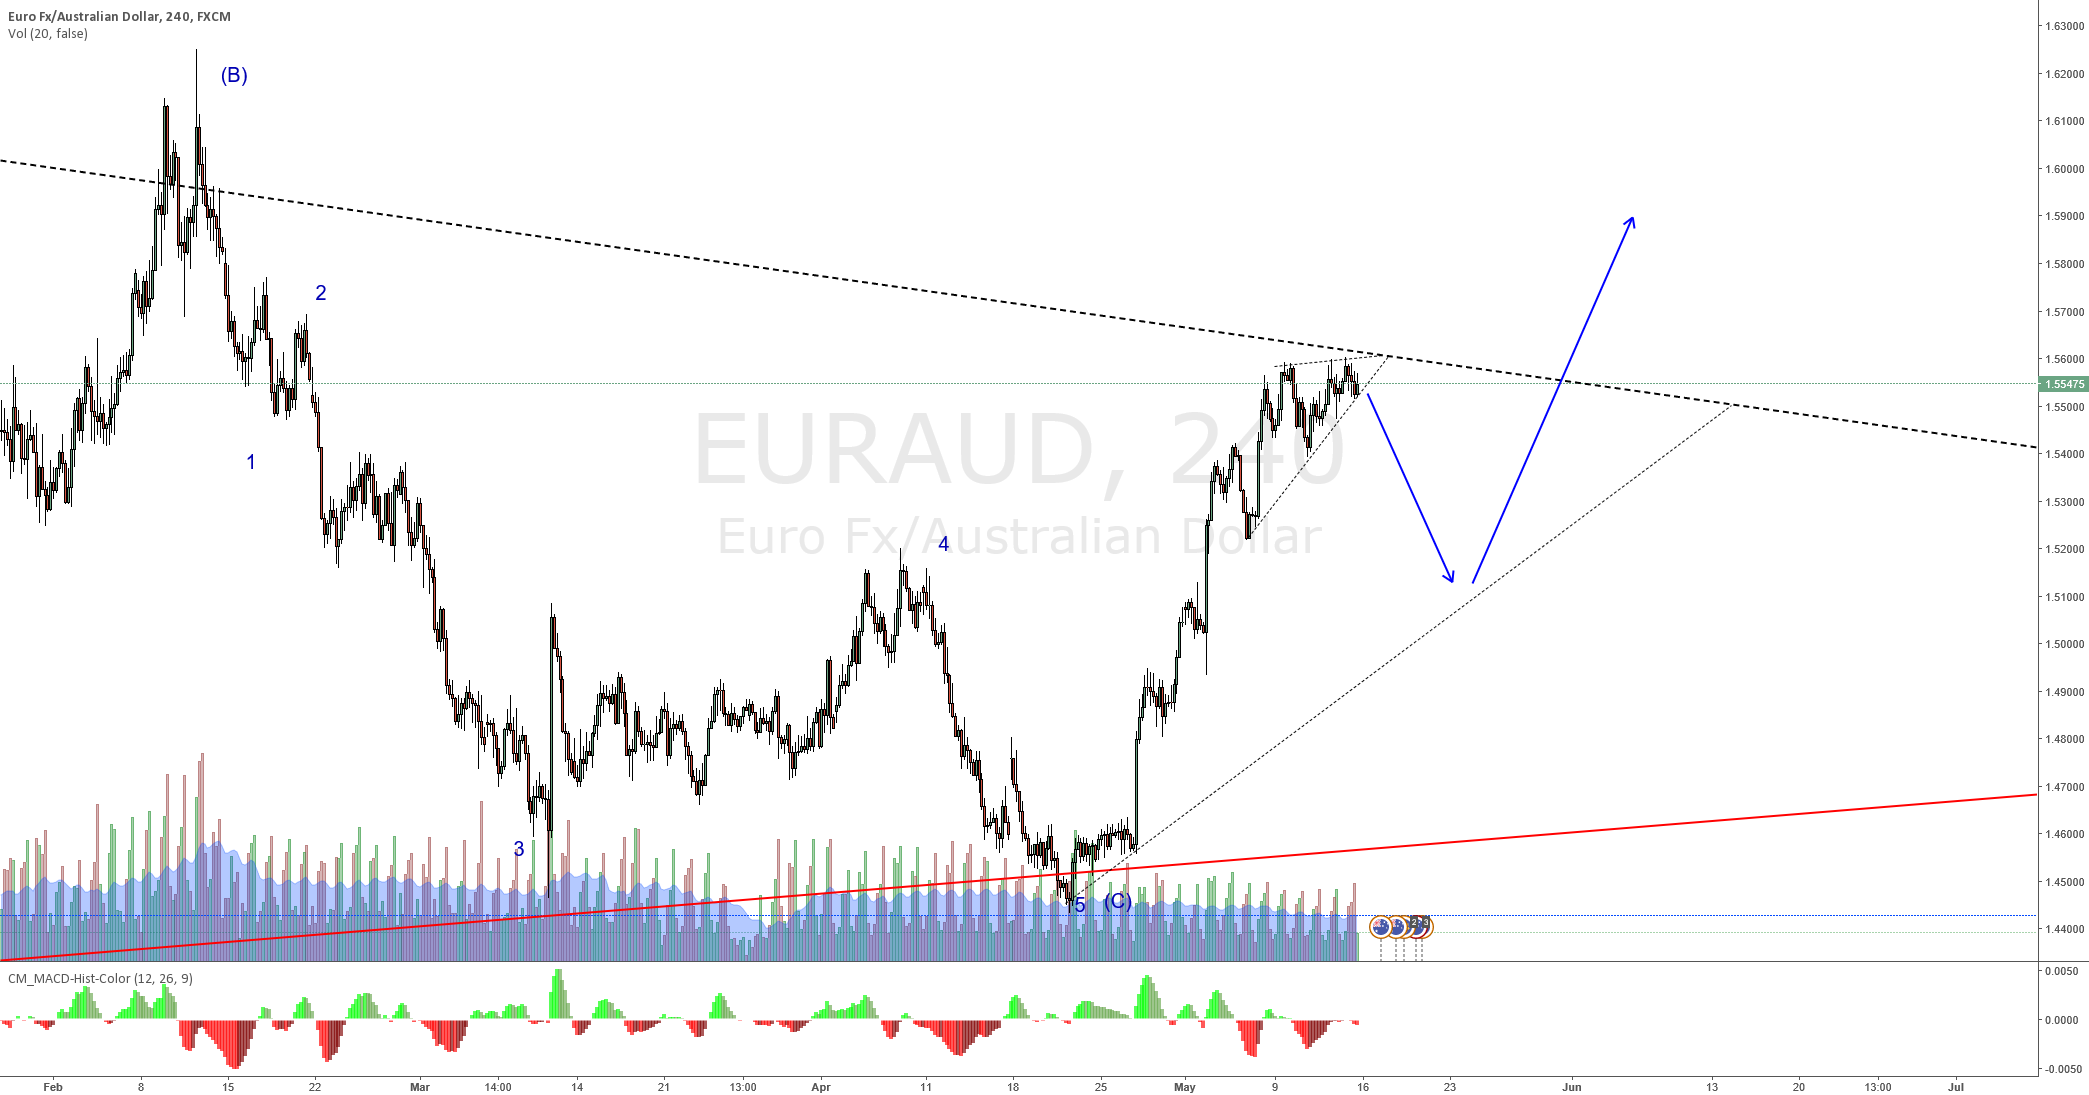 EURAUD Wave 1 ending wait for wave 3 to start